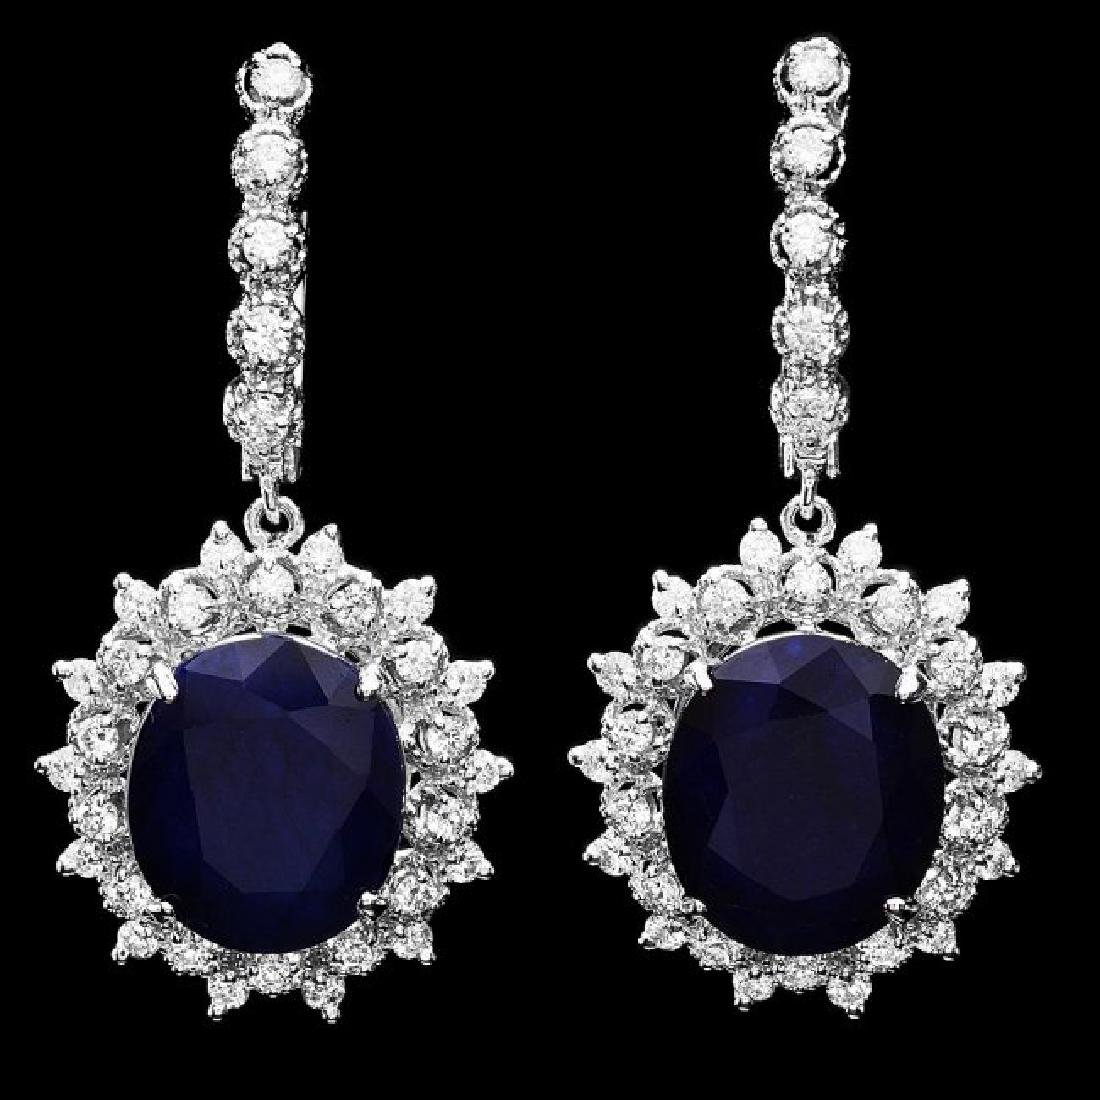 14k Gold 15ct Sapphire 1.50ct Diamond Earrings